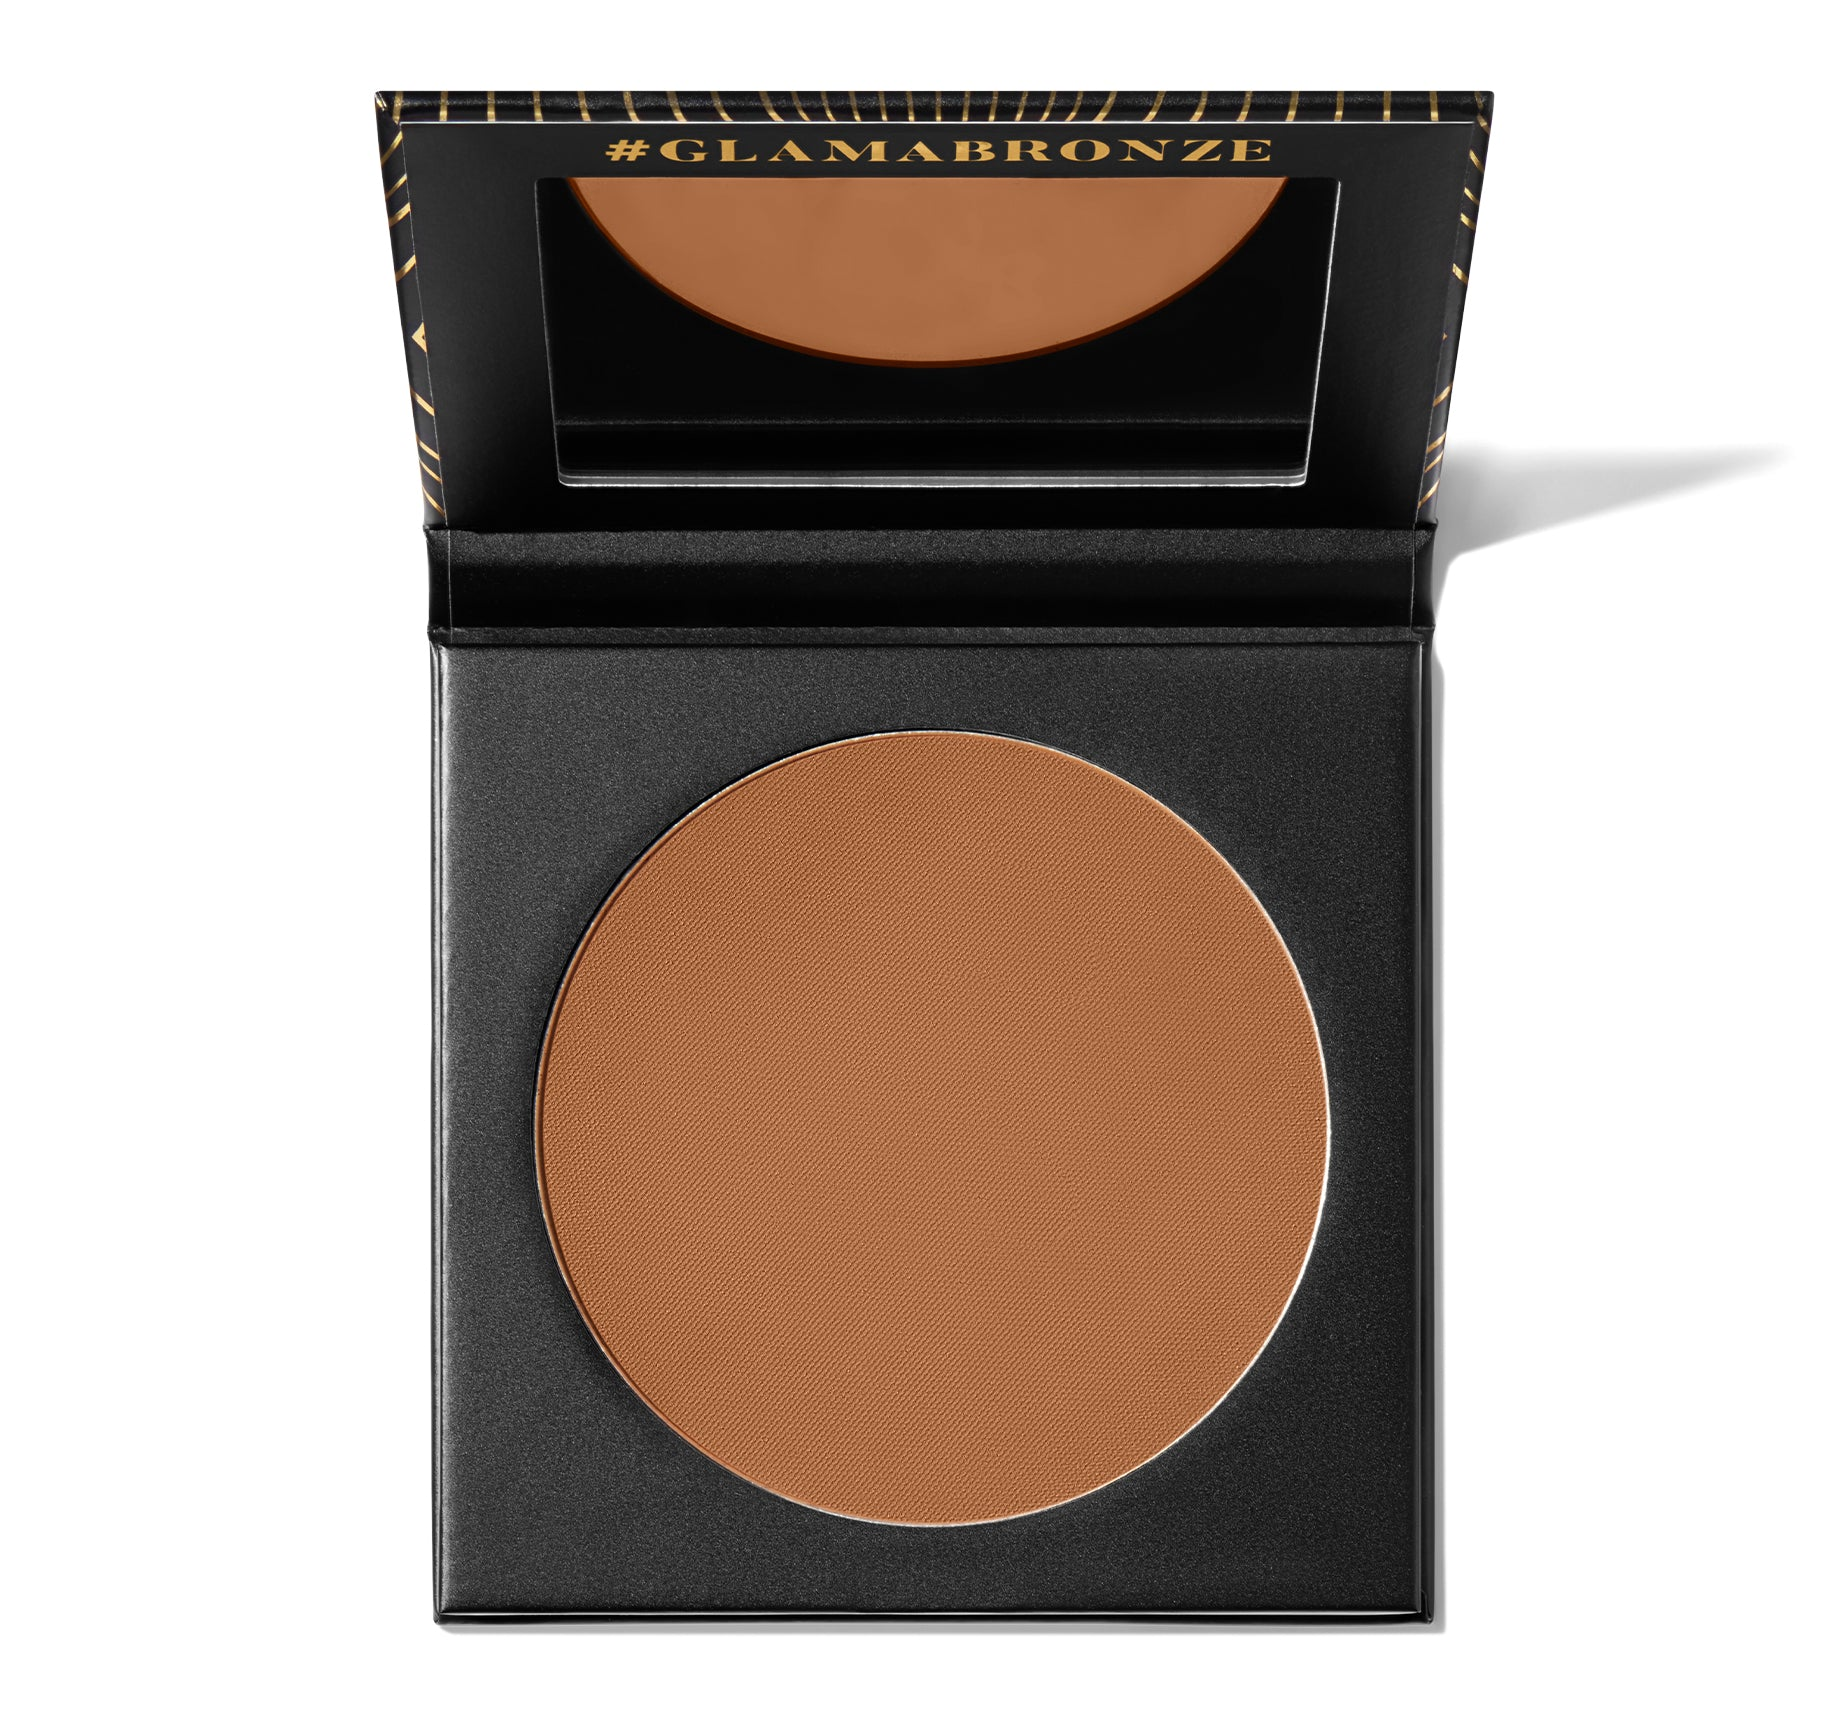 GLAMABRONZE FACE & BODY BRONZER - BIG SHOT, view larger image